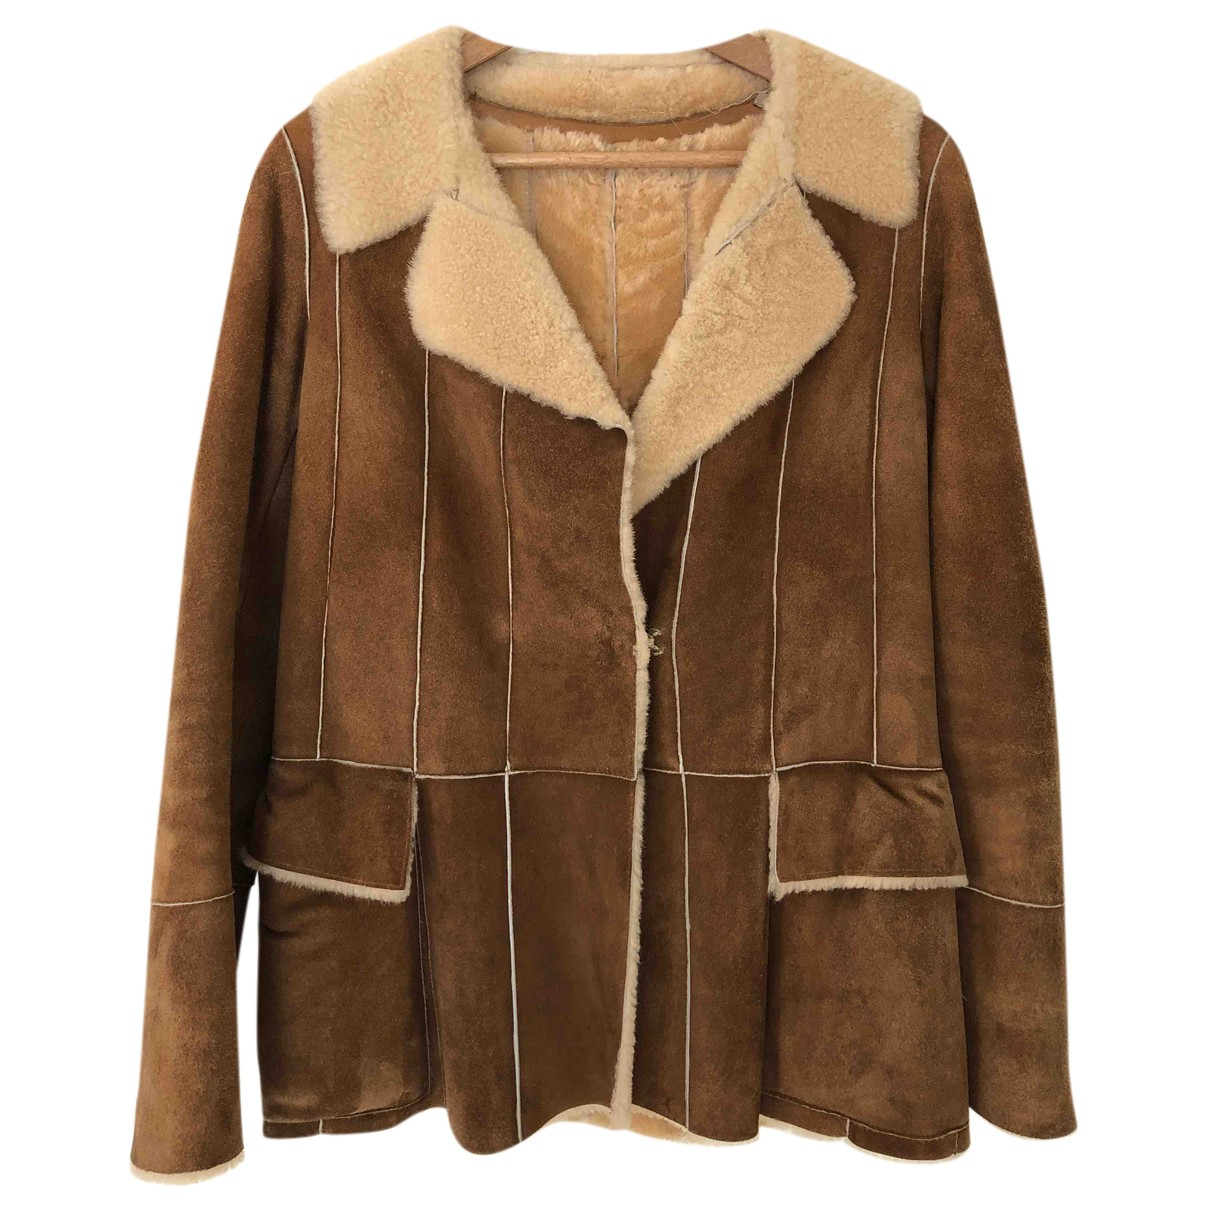 Nicole Farhi N Brown Shearling coat for Women 6 UK